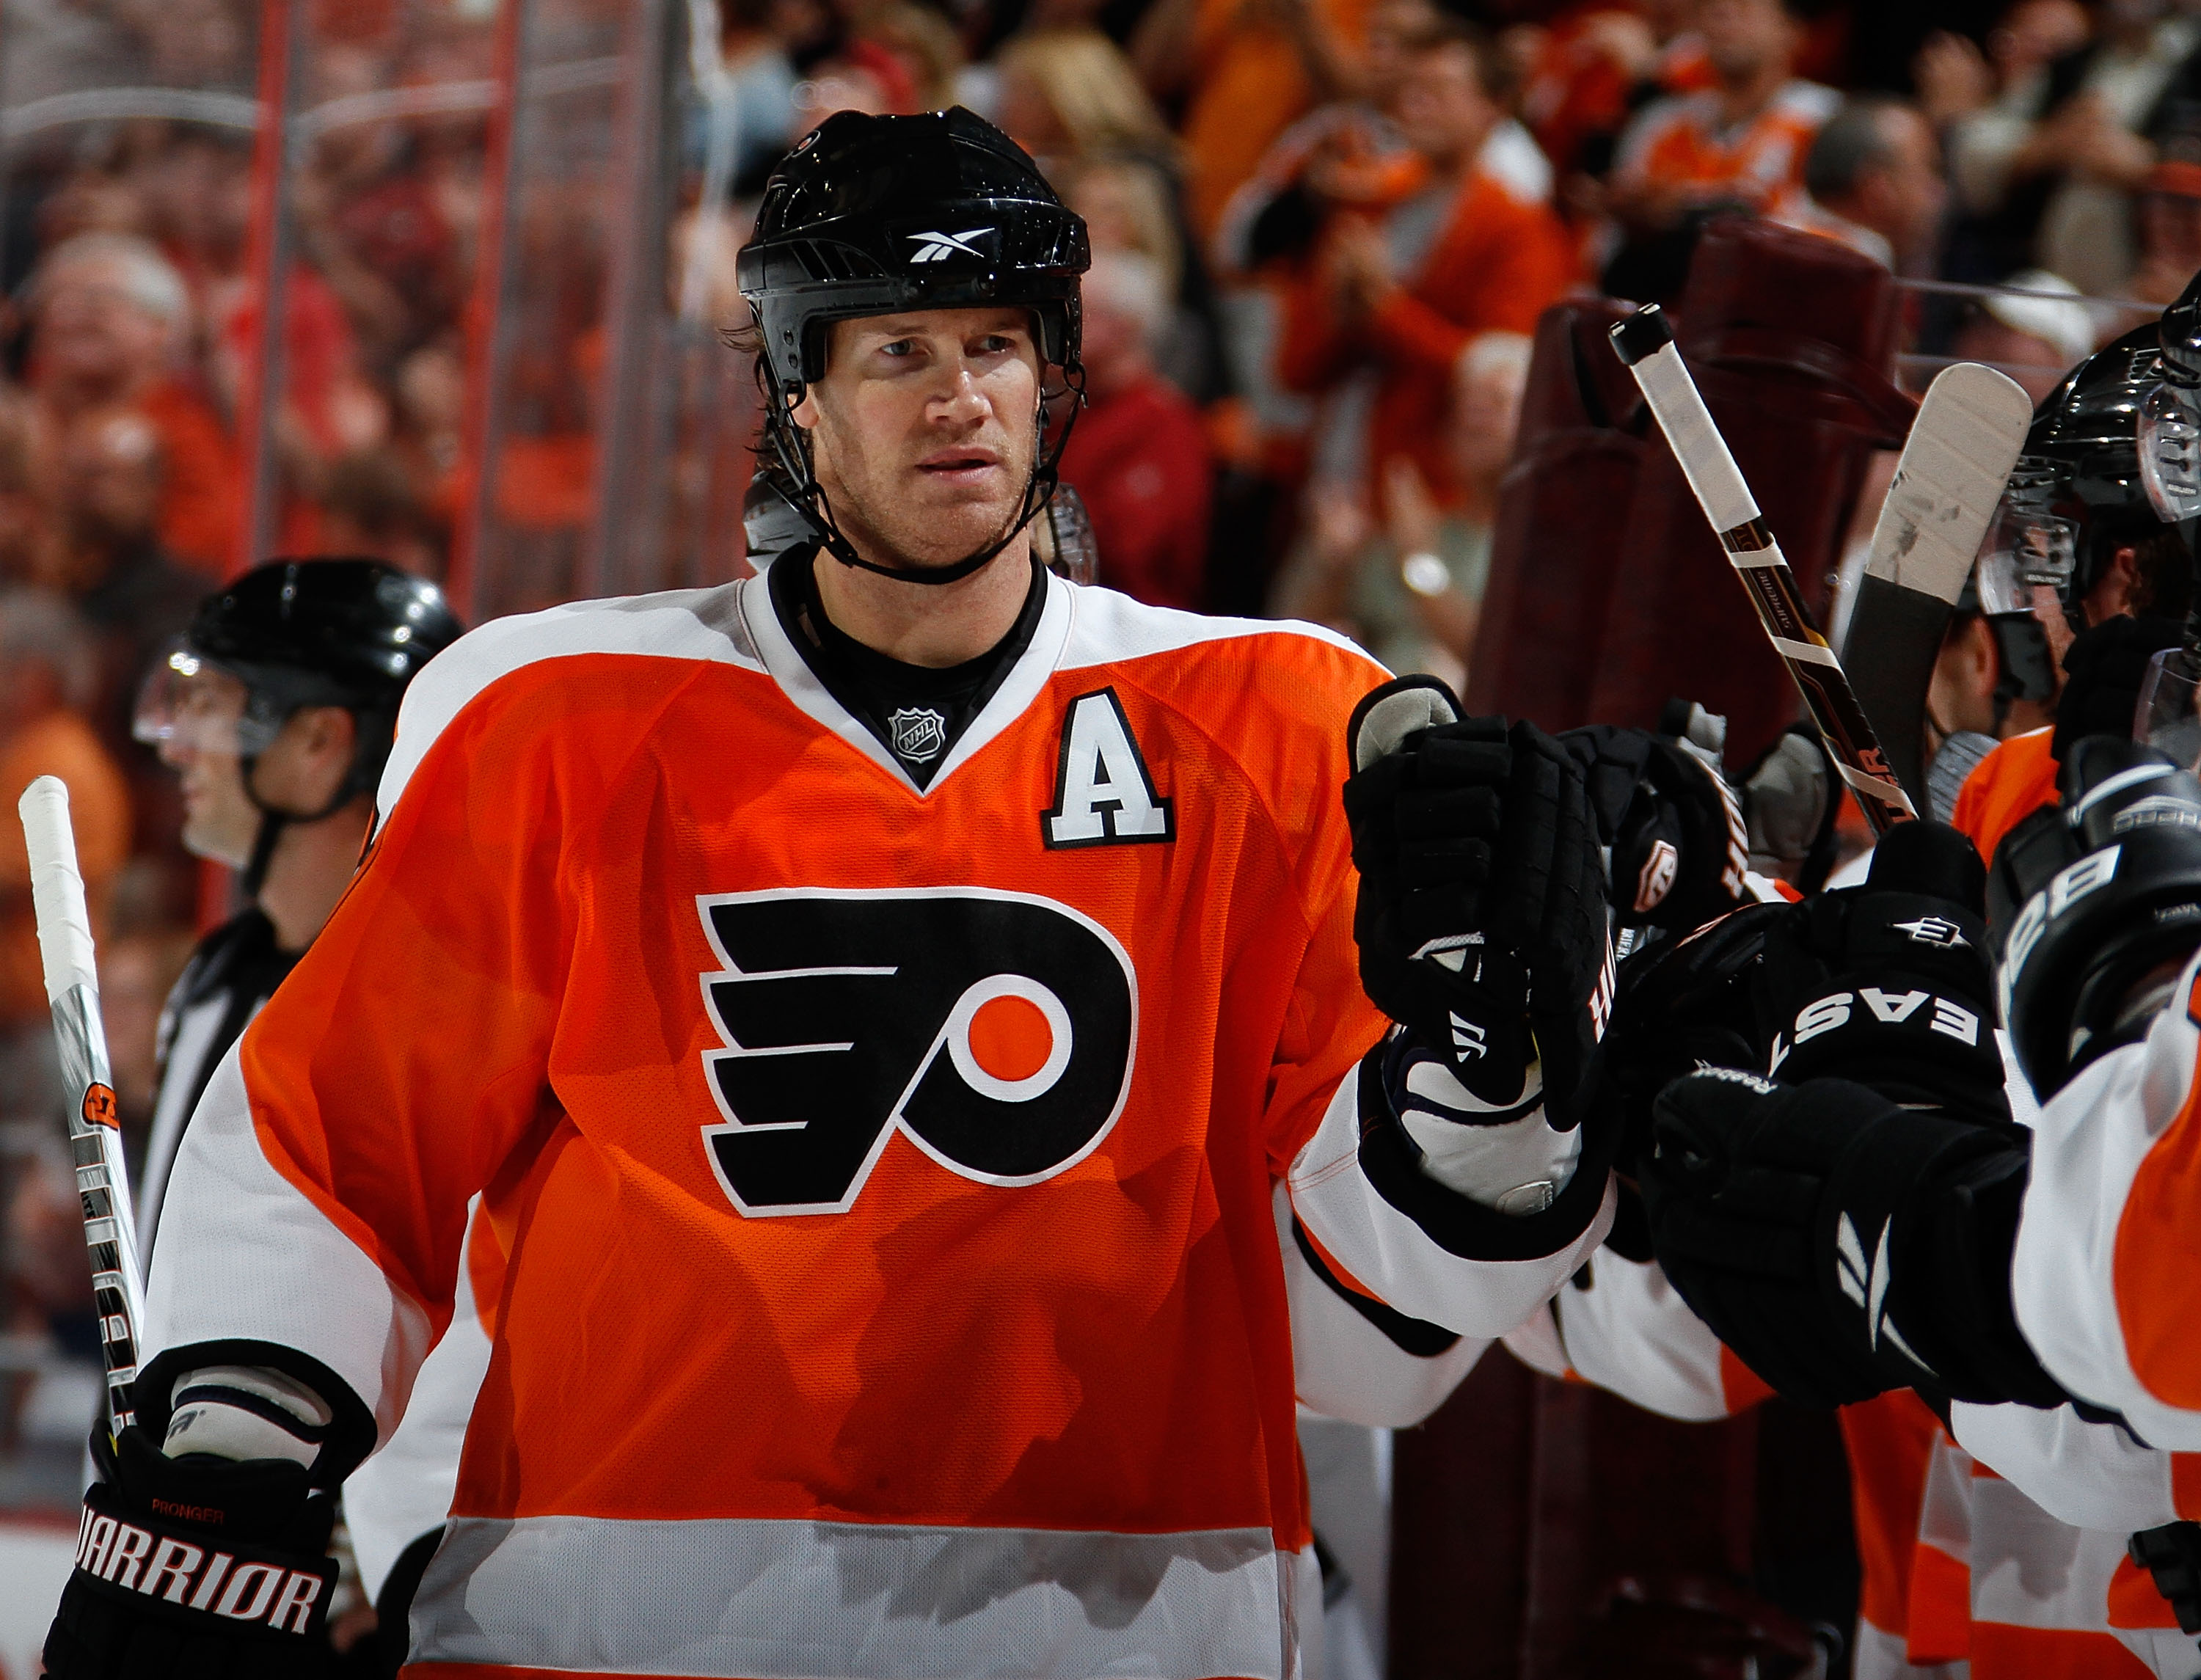 PHILADELPHIA - OCTOBER 11:  Chris Pronger #20 of the Philadelphia Flyers celebrates a Flyers goal against the Colorado Avalanche in a hockey game at the Wells Fargo Center on October 11, 2010 in Philadelphia, Pennsylvania.  (Photo by Paul Bereswill/Getty